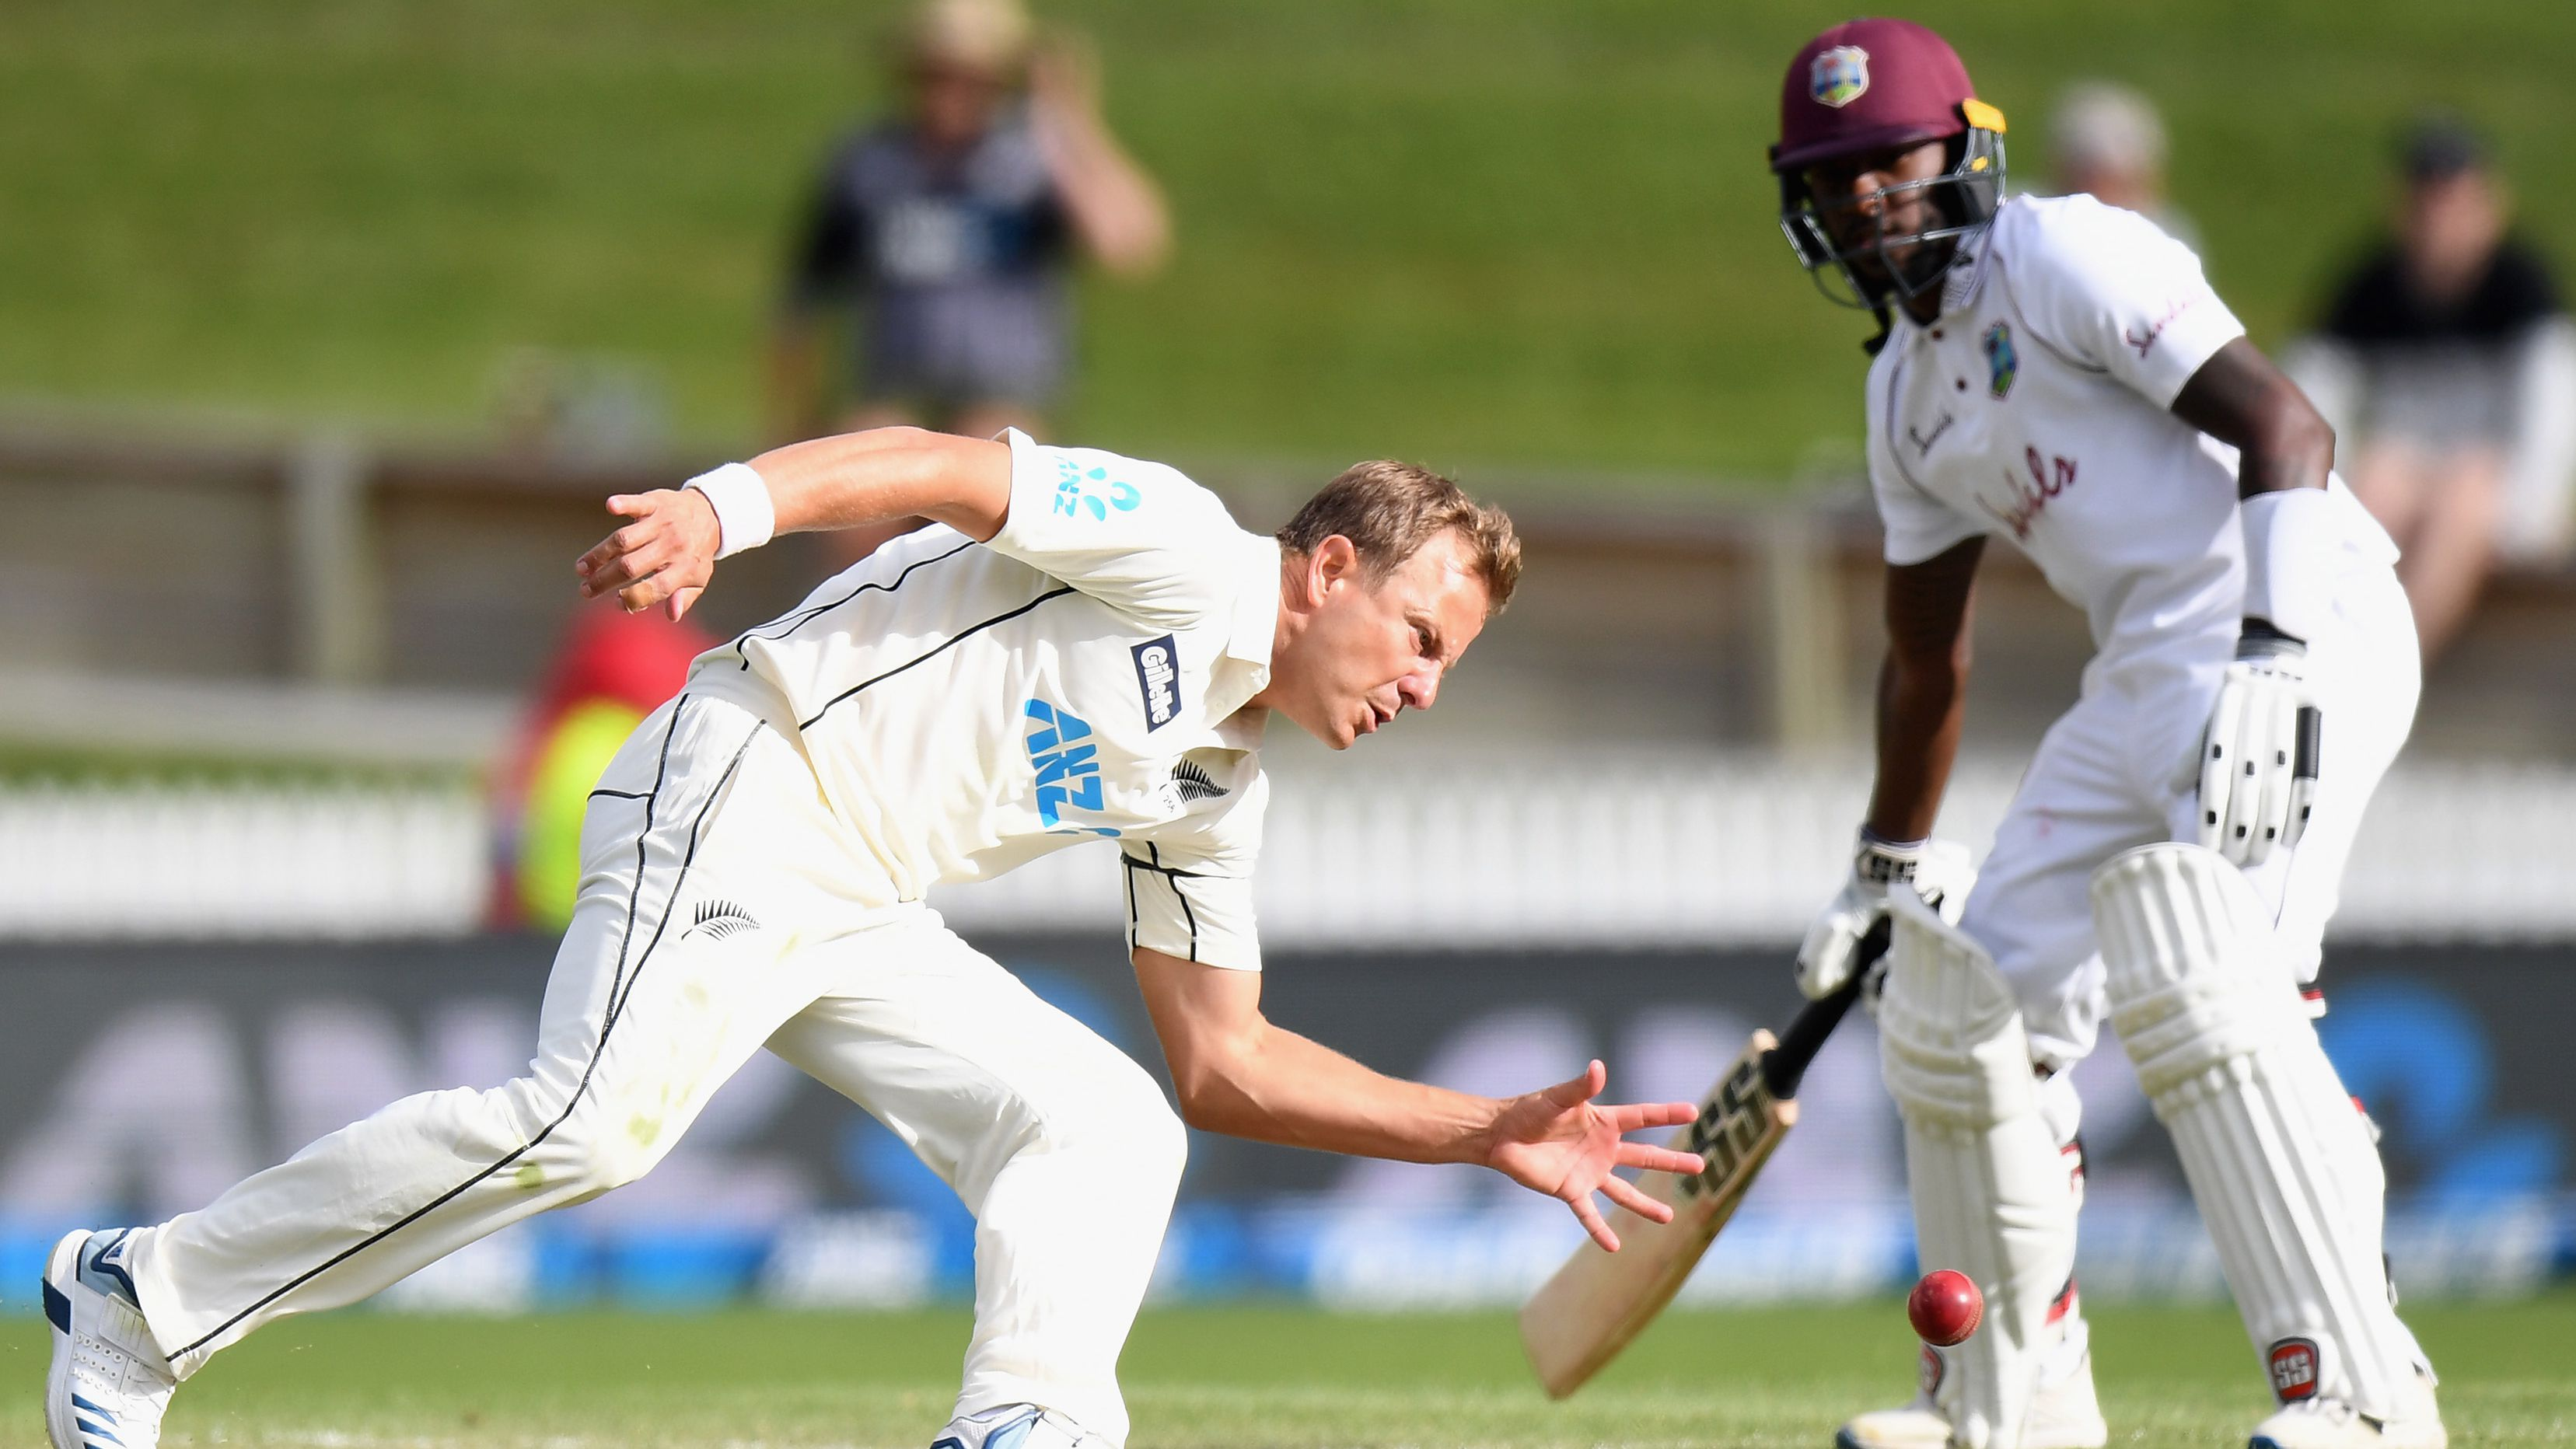 New Zealand's push for innings Test victory stalled by counter-attacking West Indies pair